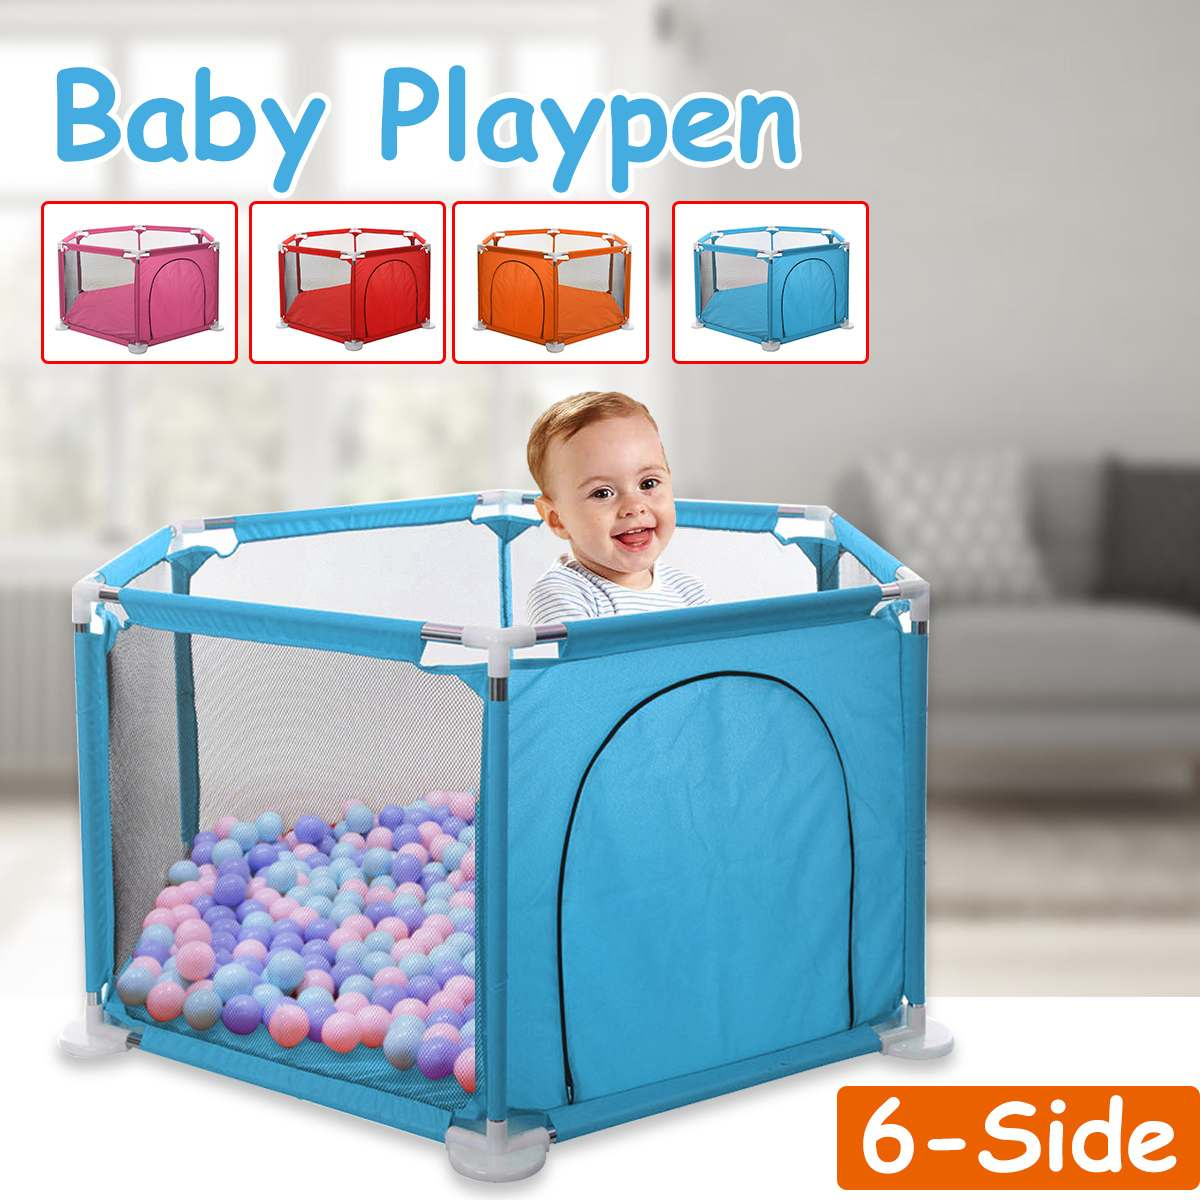 Baby Playpen Interactive Kids Play Playard Game Pool Sponge Ball Ocean Ball Safety Gate 6 Panel Fence For Kids Baby